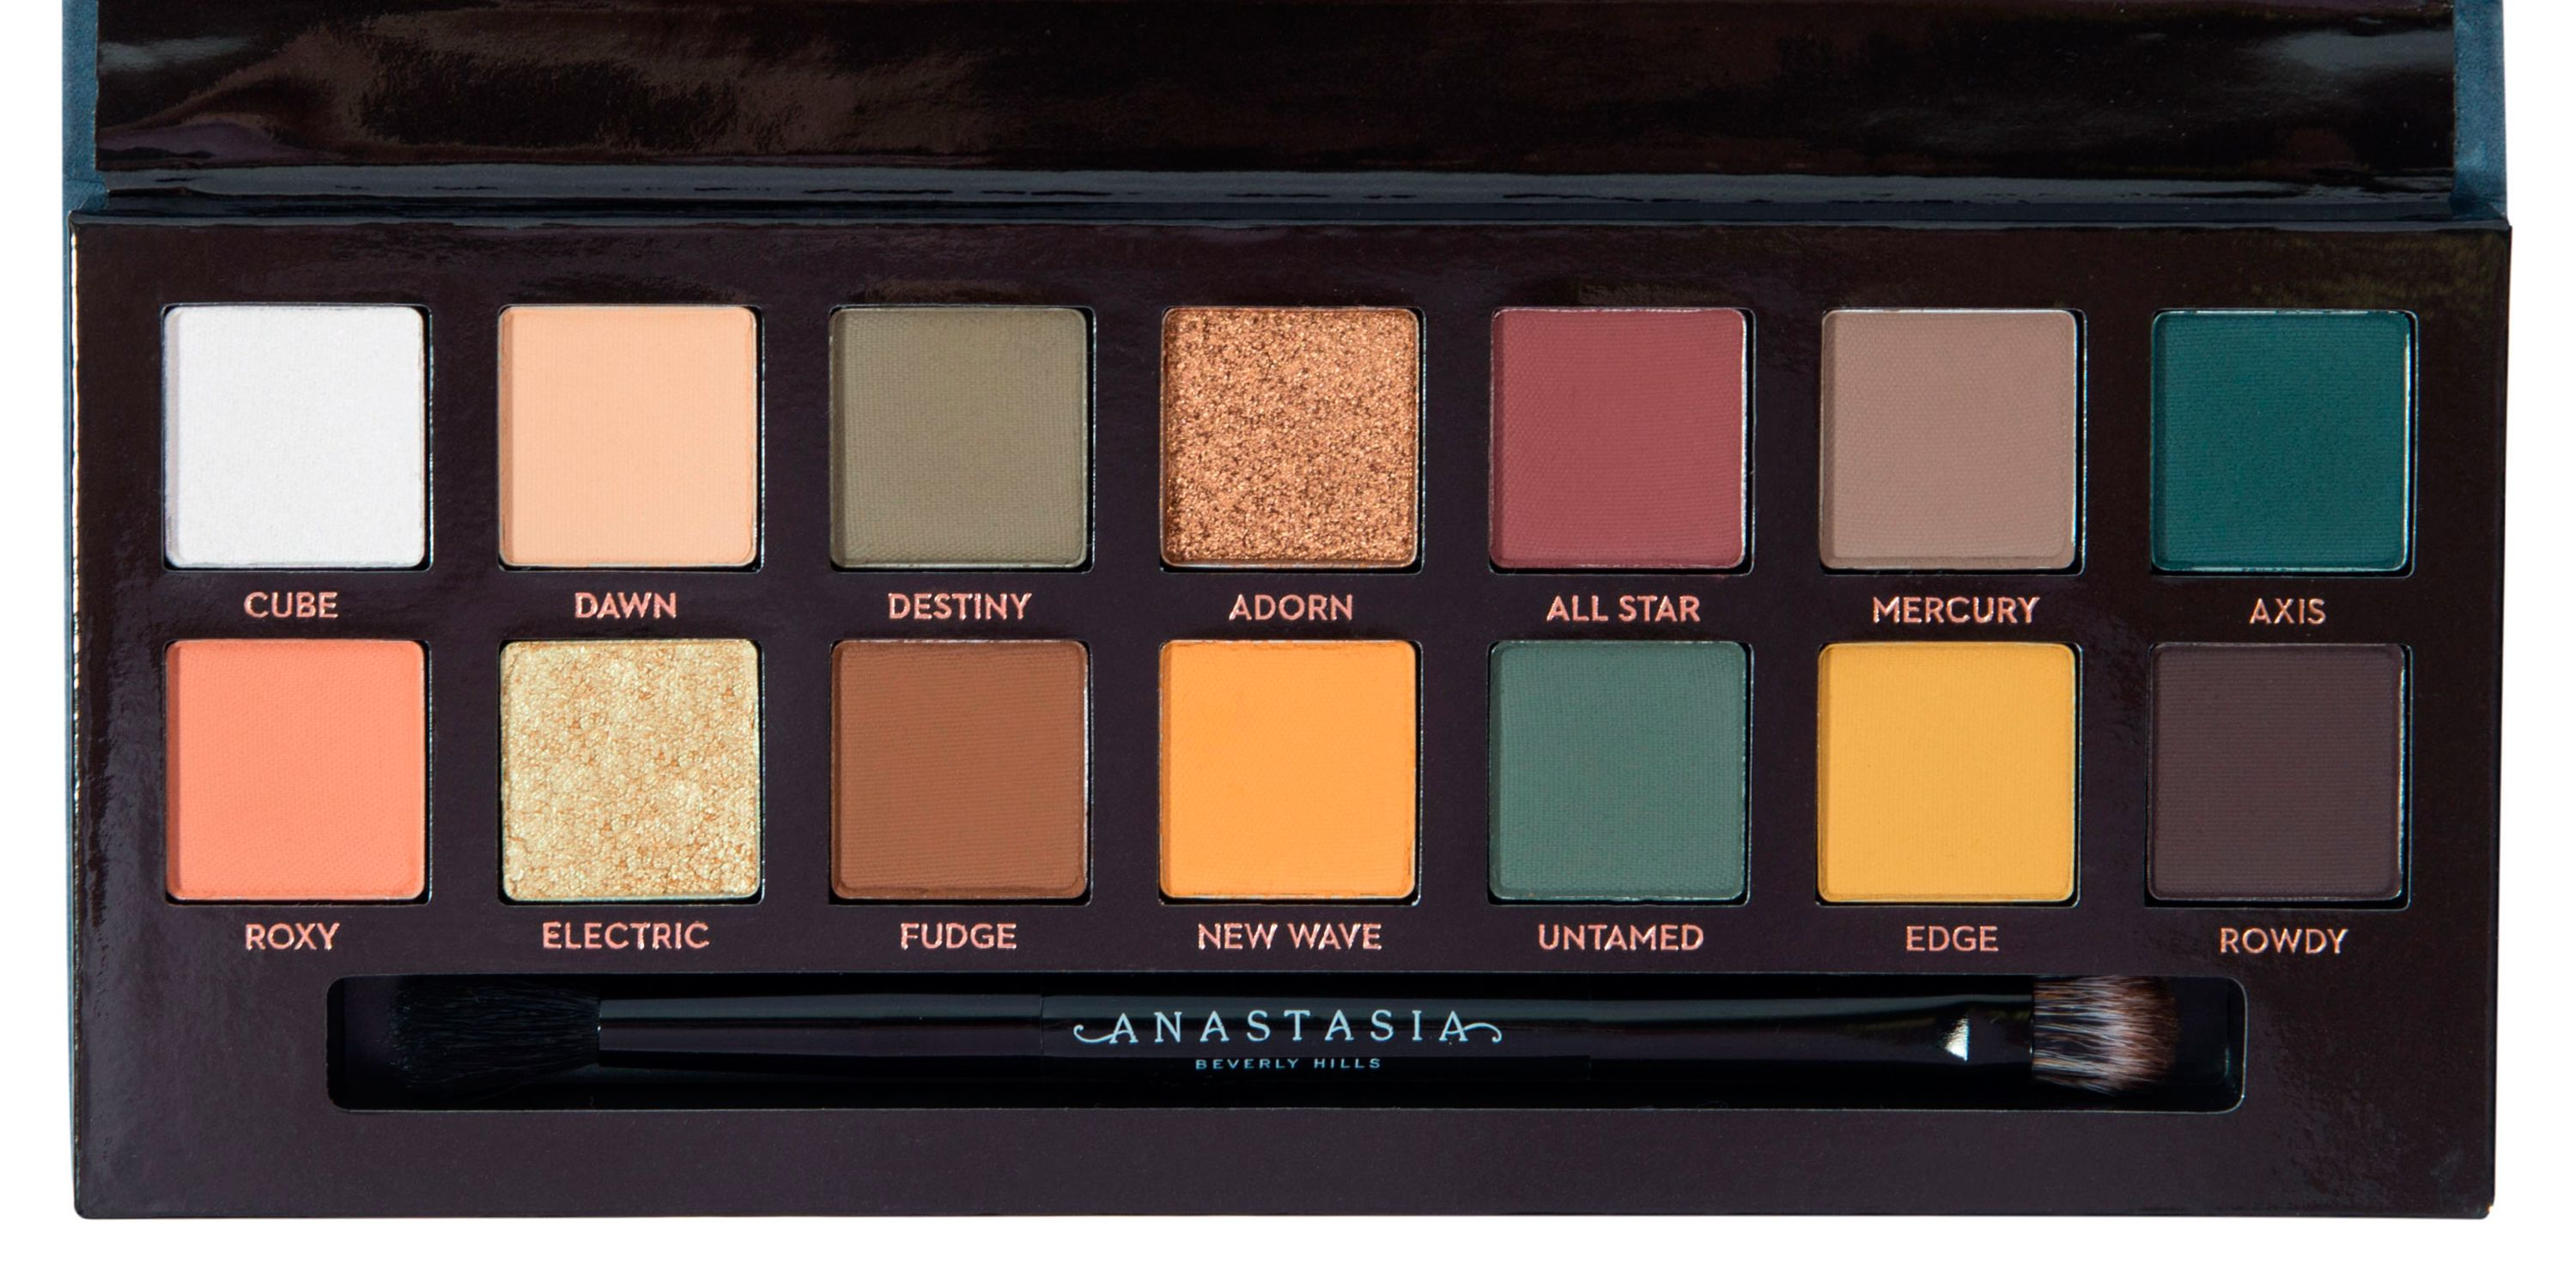 Best eyeshadow palette - reviews and swatches